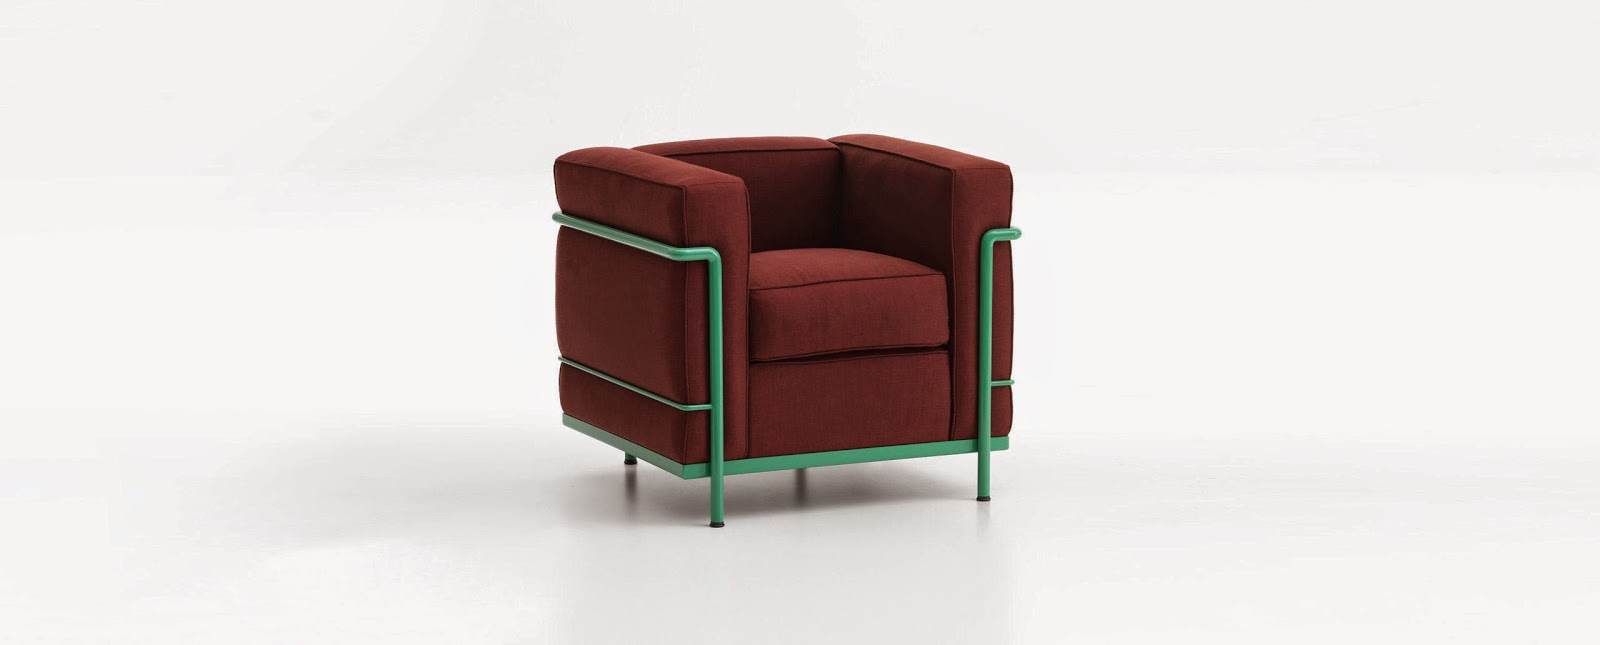 and finally the lc 4 lounge chair is a modernist masterpiece taking